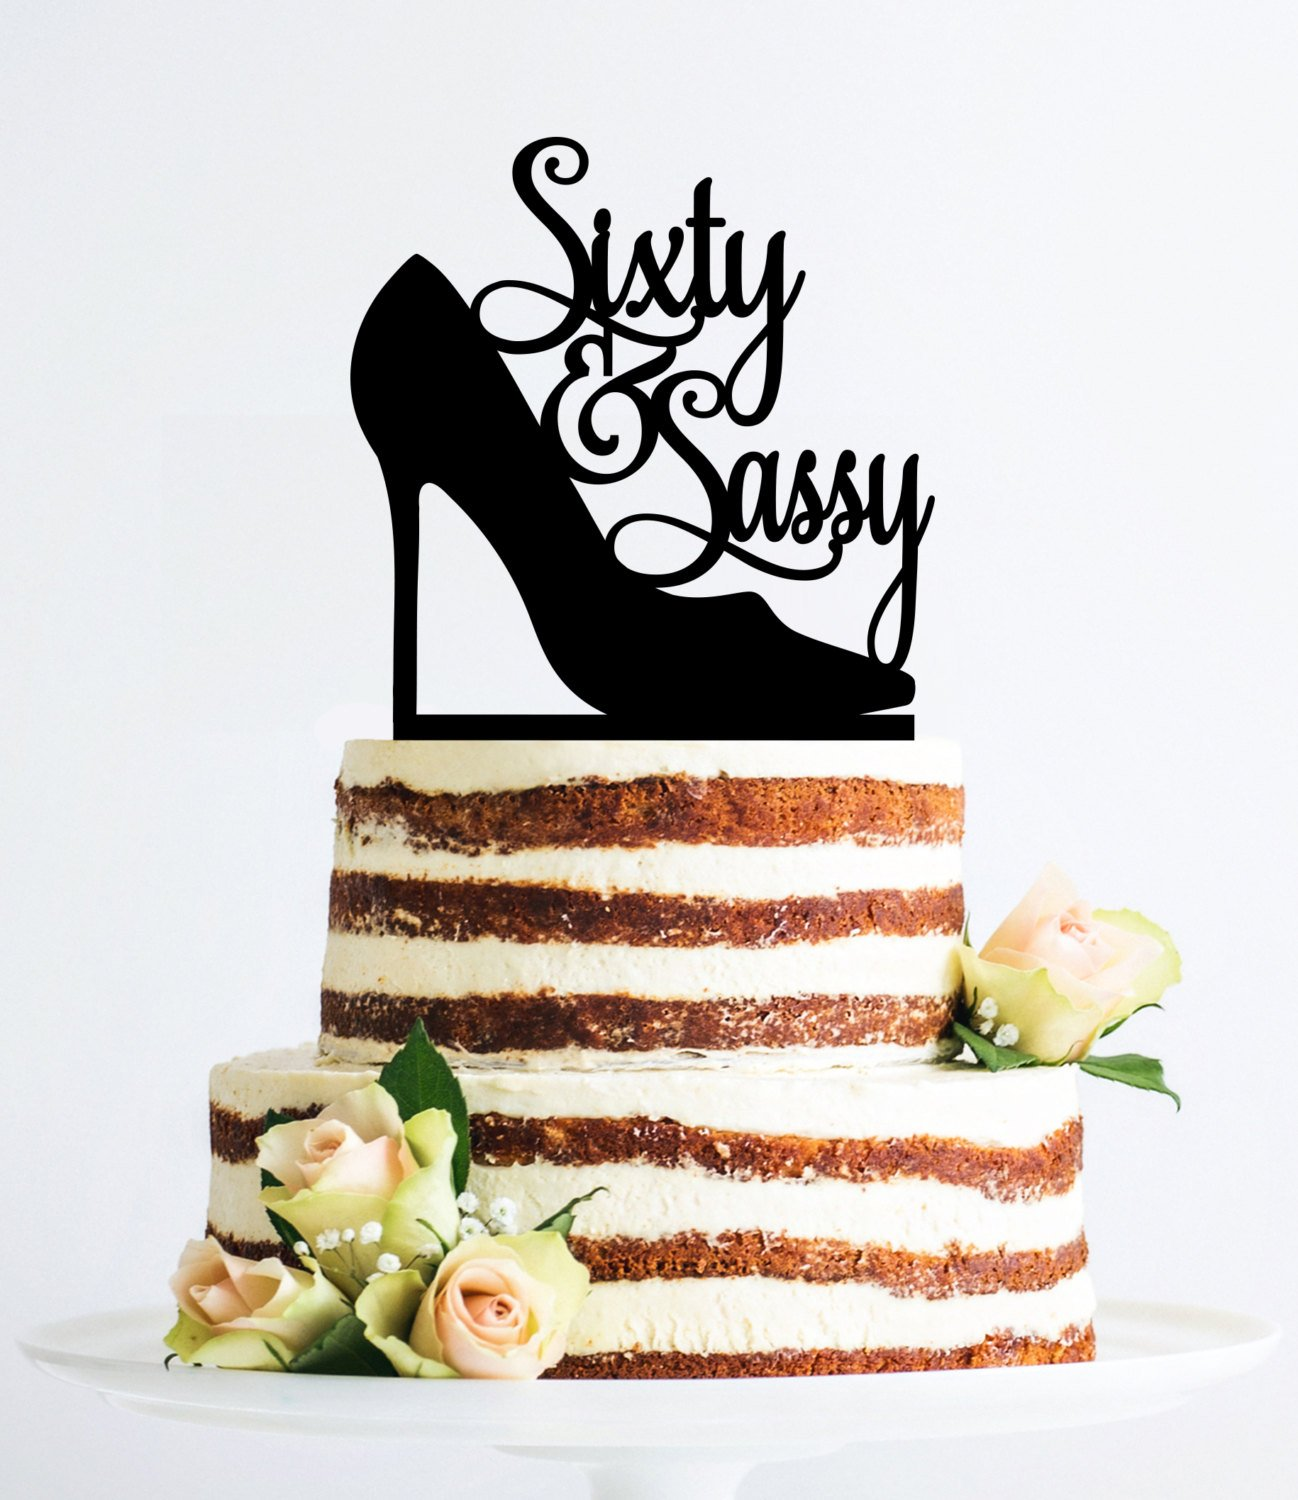 Pleasing Custom Sixty Cake Topper Sixty And Sassy Topper 60 Cake Topper Funny Birthday Cards Online Hetedamsfinfo